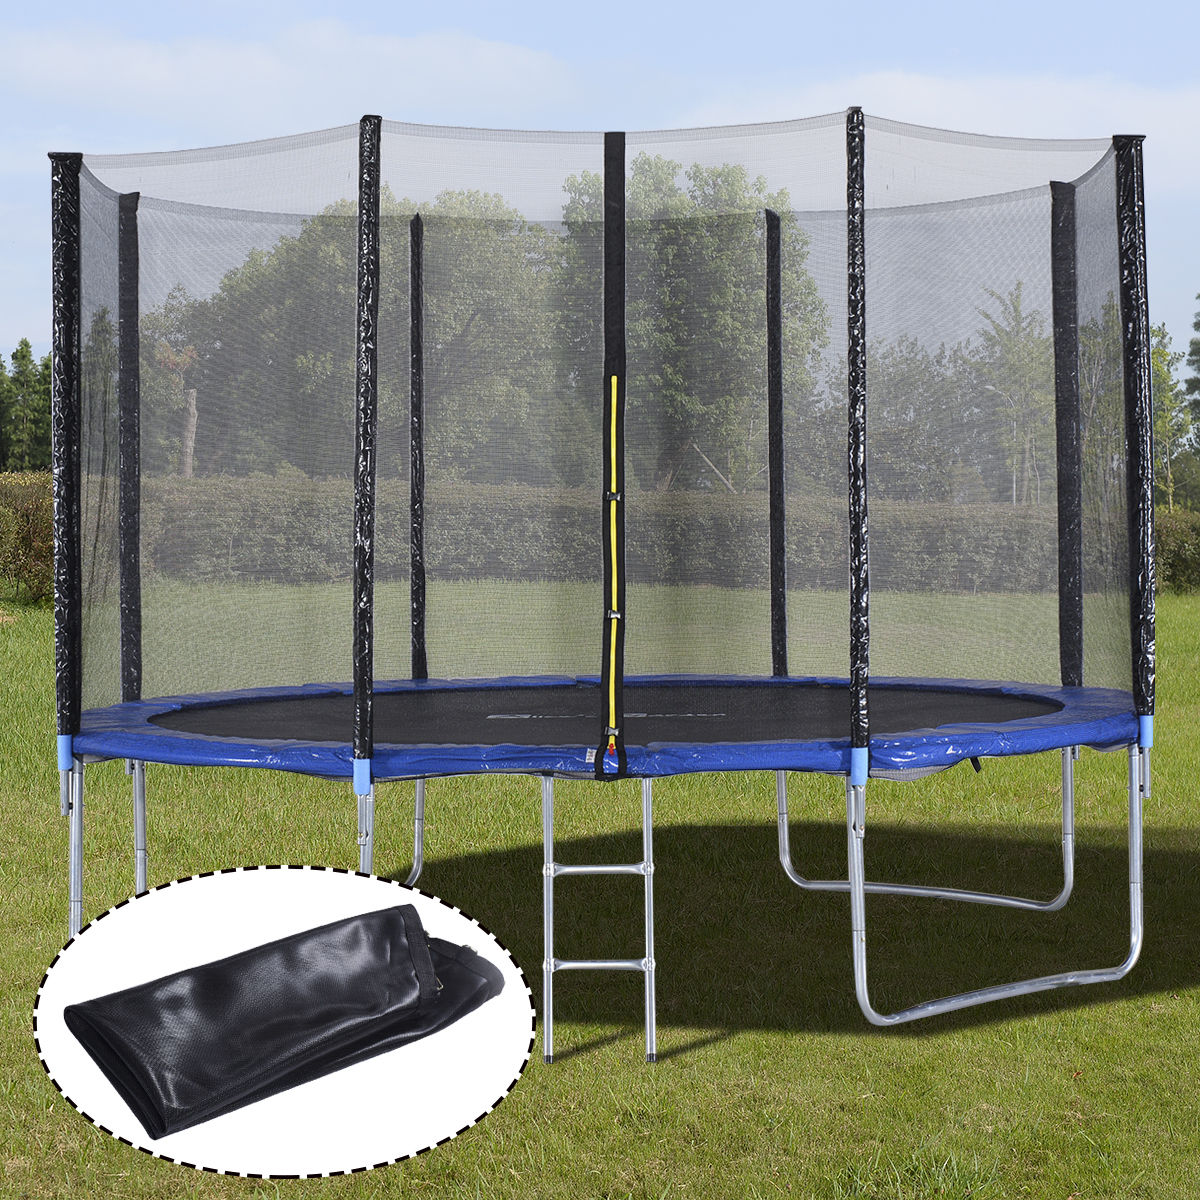 Costway 12FT Trampoline Combo Bounce Jump Safety Enclosure Net W/Spring Pad